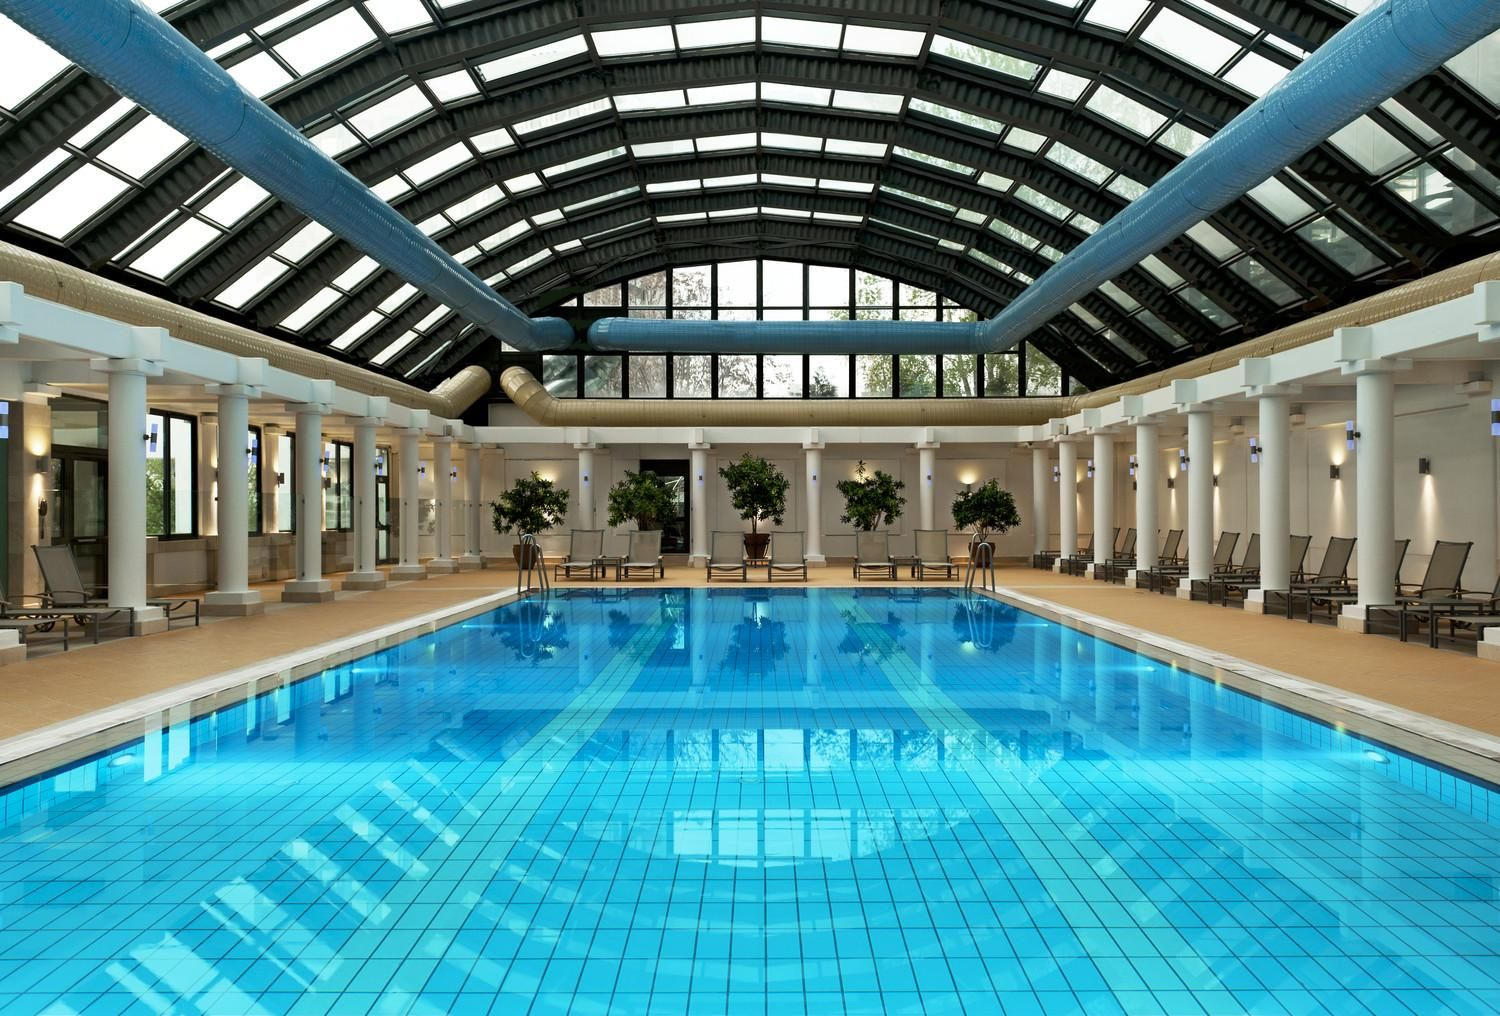 Luxurious indoor pool design with huge rectangle shaped pool and lovely beach chairs and Indoor swimming pool pictures